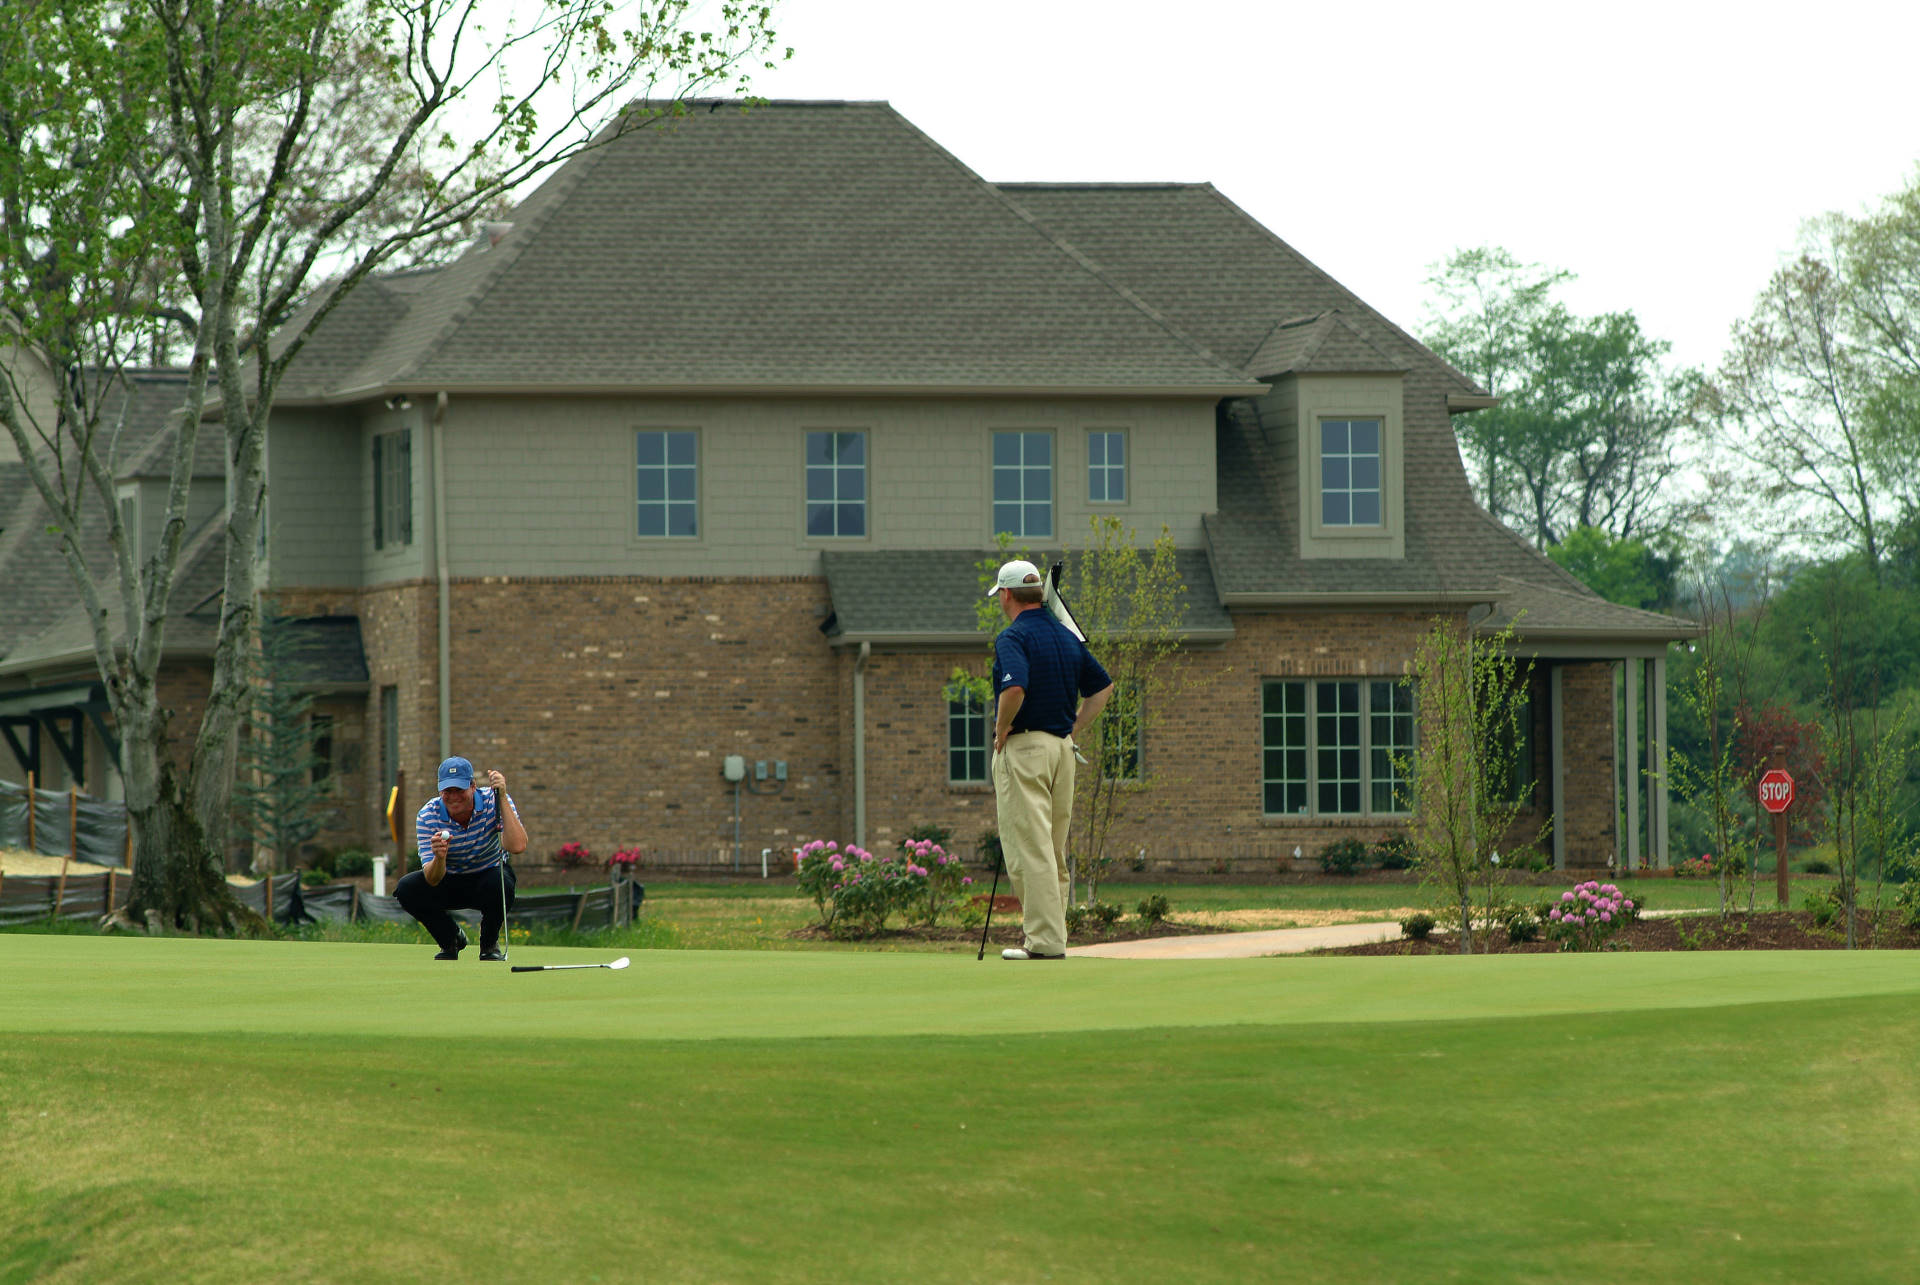 2 Men Golfing at Tennessee National with house in background